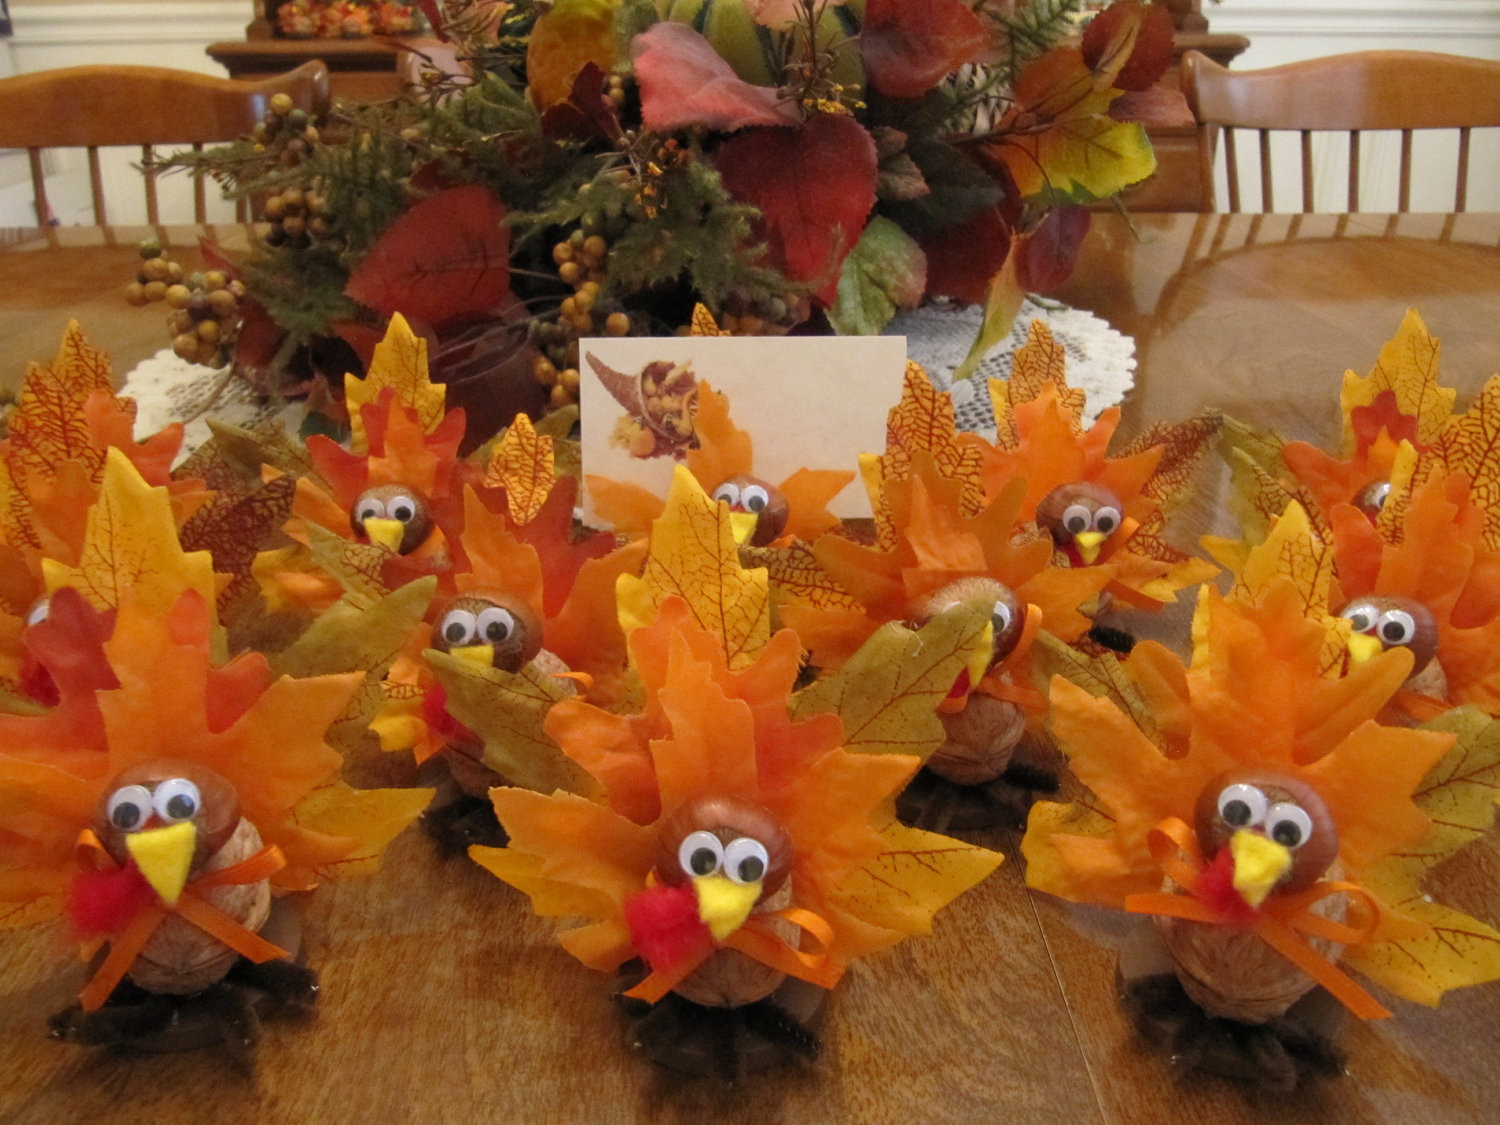 DIY Thanksgiving Decor Pinterest  Thanksgiving Table Ideas That Are Fun For The Whole Family